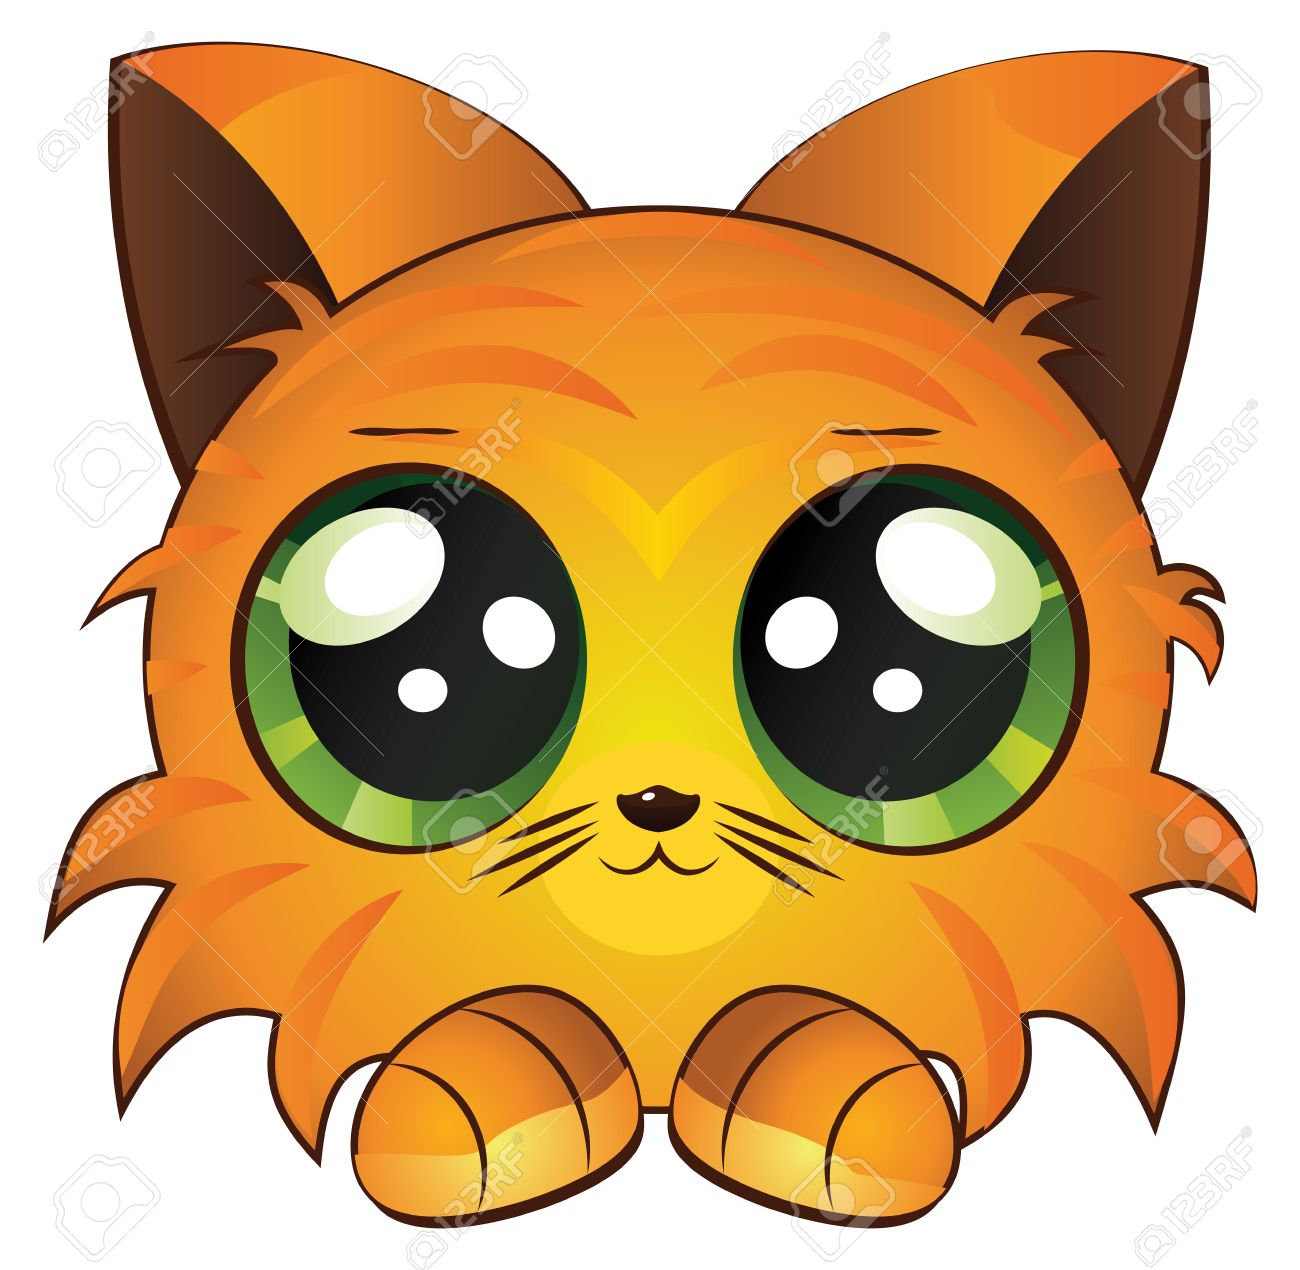 Image of: Eyes Cute Cartoon Red Kitten On White Stock Vector 24935178 123rfcom Cute Cartoon Red Kitten On White Royalty Free Cliparts Vectors